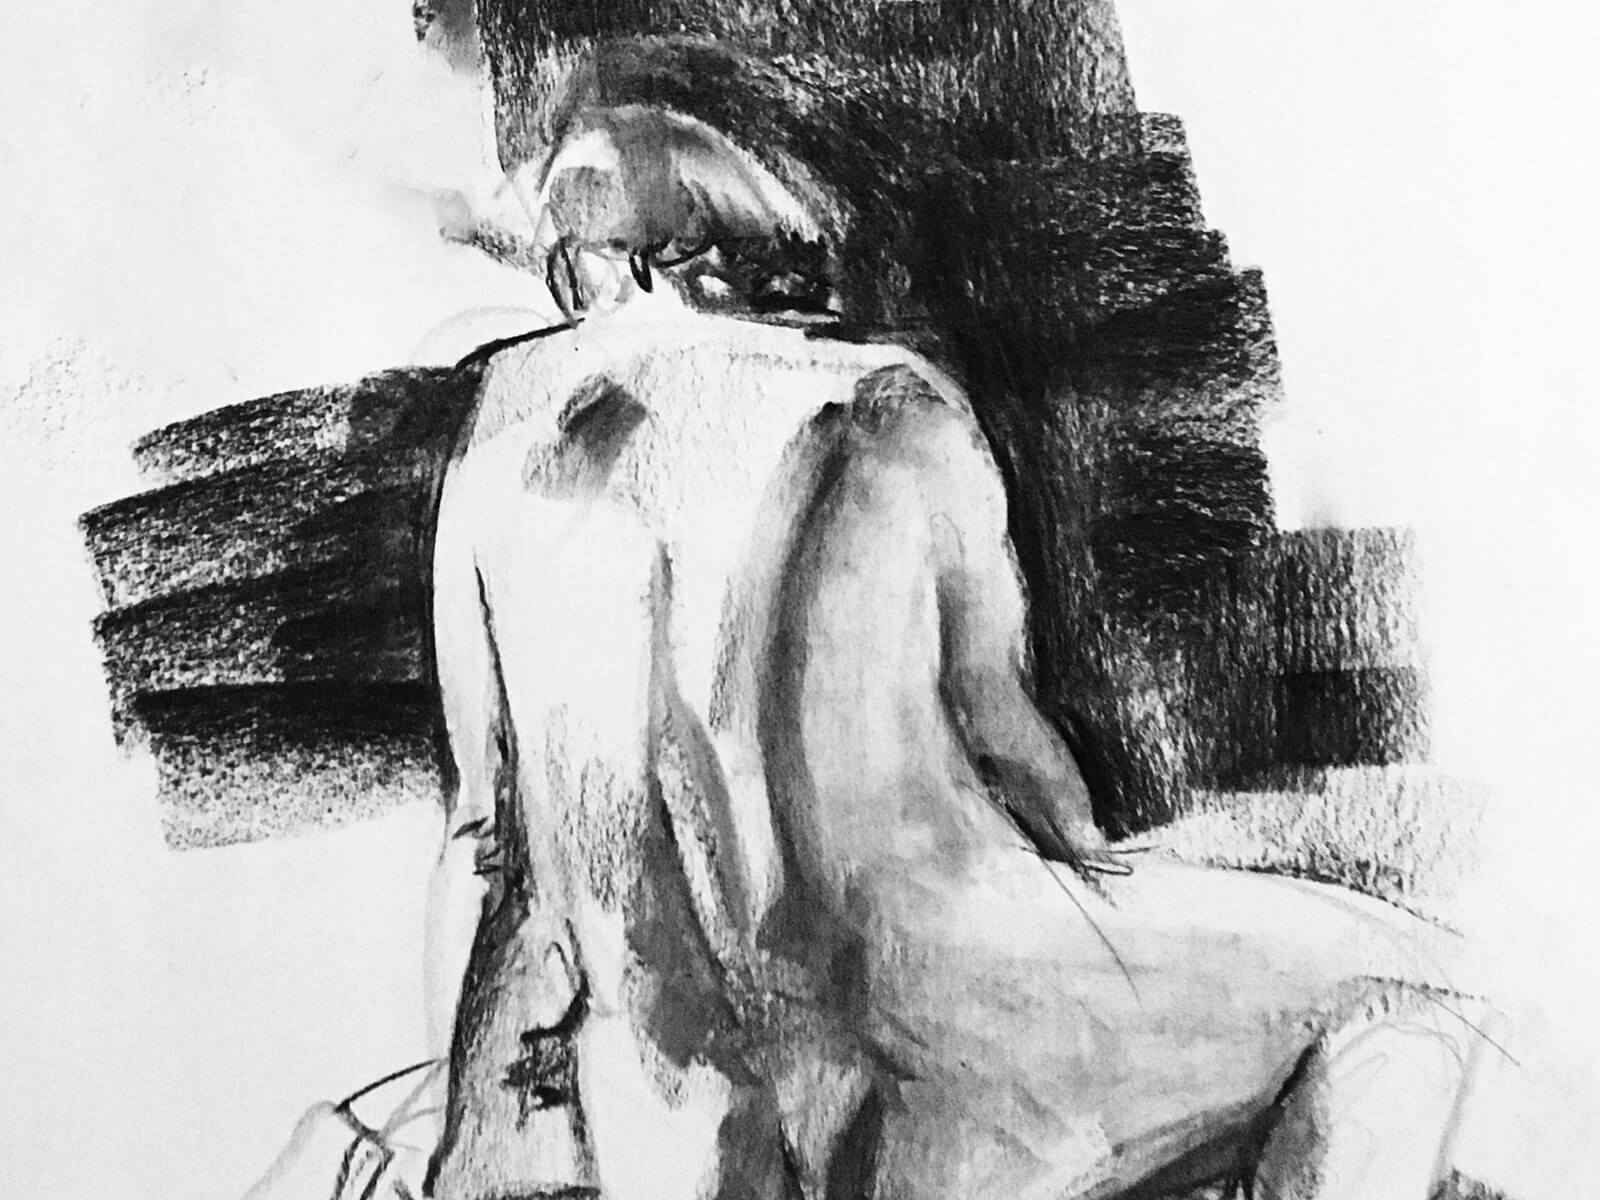 A sketch of a nude woman sitting down, her back to the artist